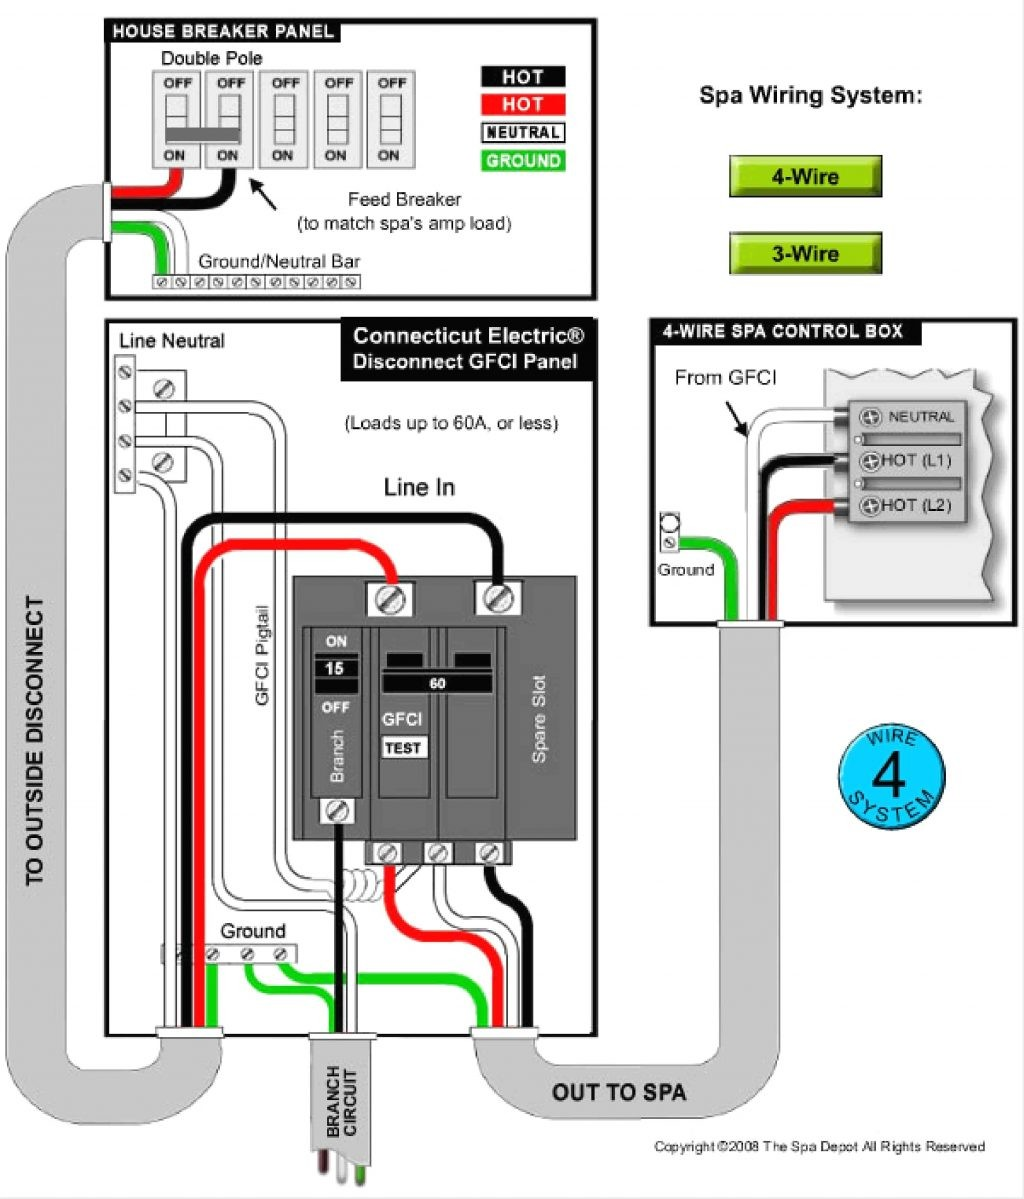 ev10 wiring diagram detailed schematics diagram gfci internal wiring 110v  wiring schematic symbols wiring lighted doorbell